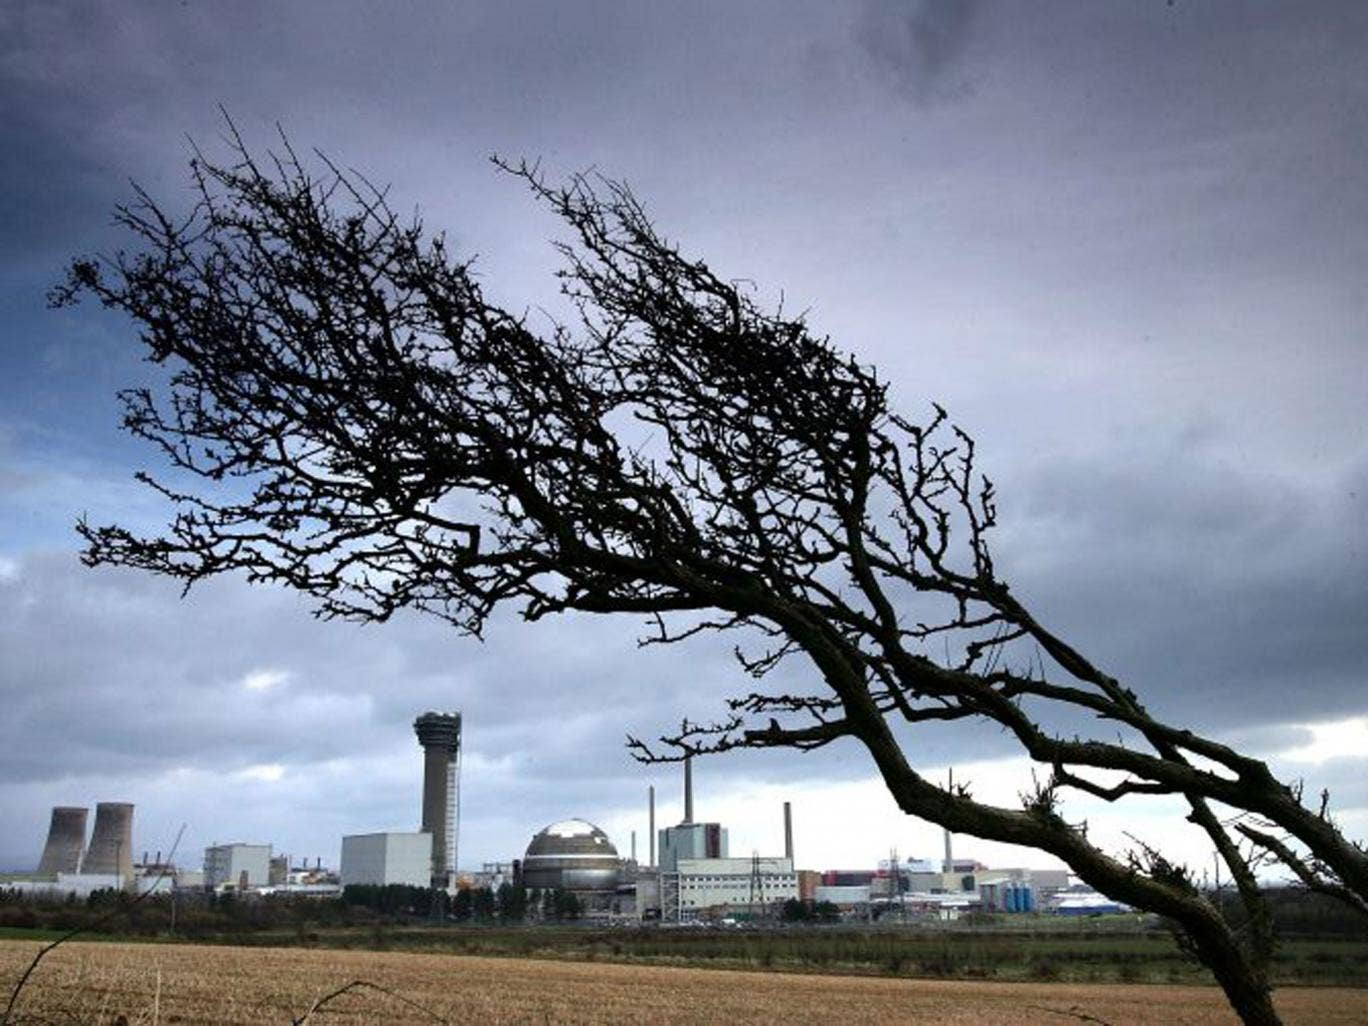 The MOX plant at Sellafield was supposed to produce 120 tons of fuel per year to sell to foreign power companies, but yielded less than 14 tons in its 10-year operational life